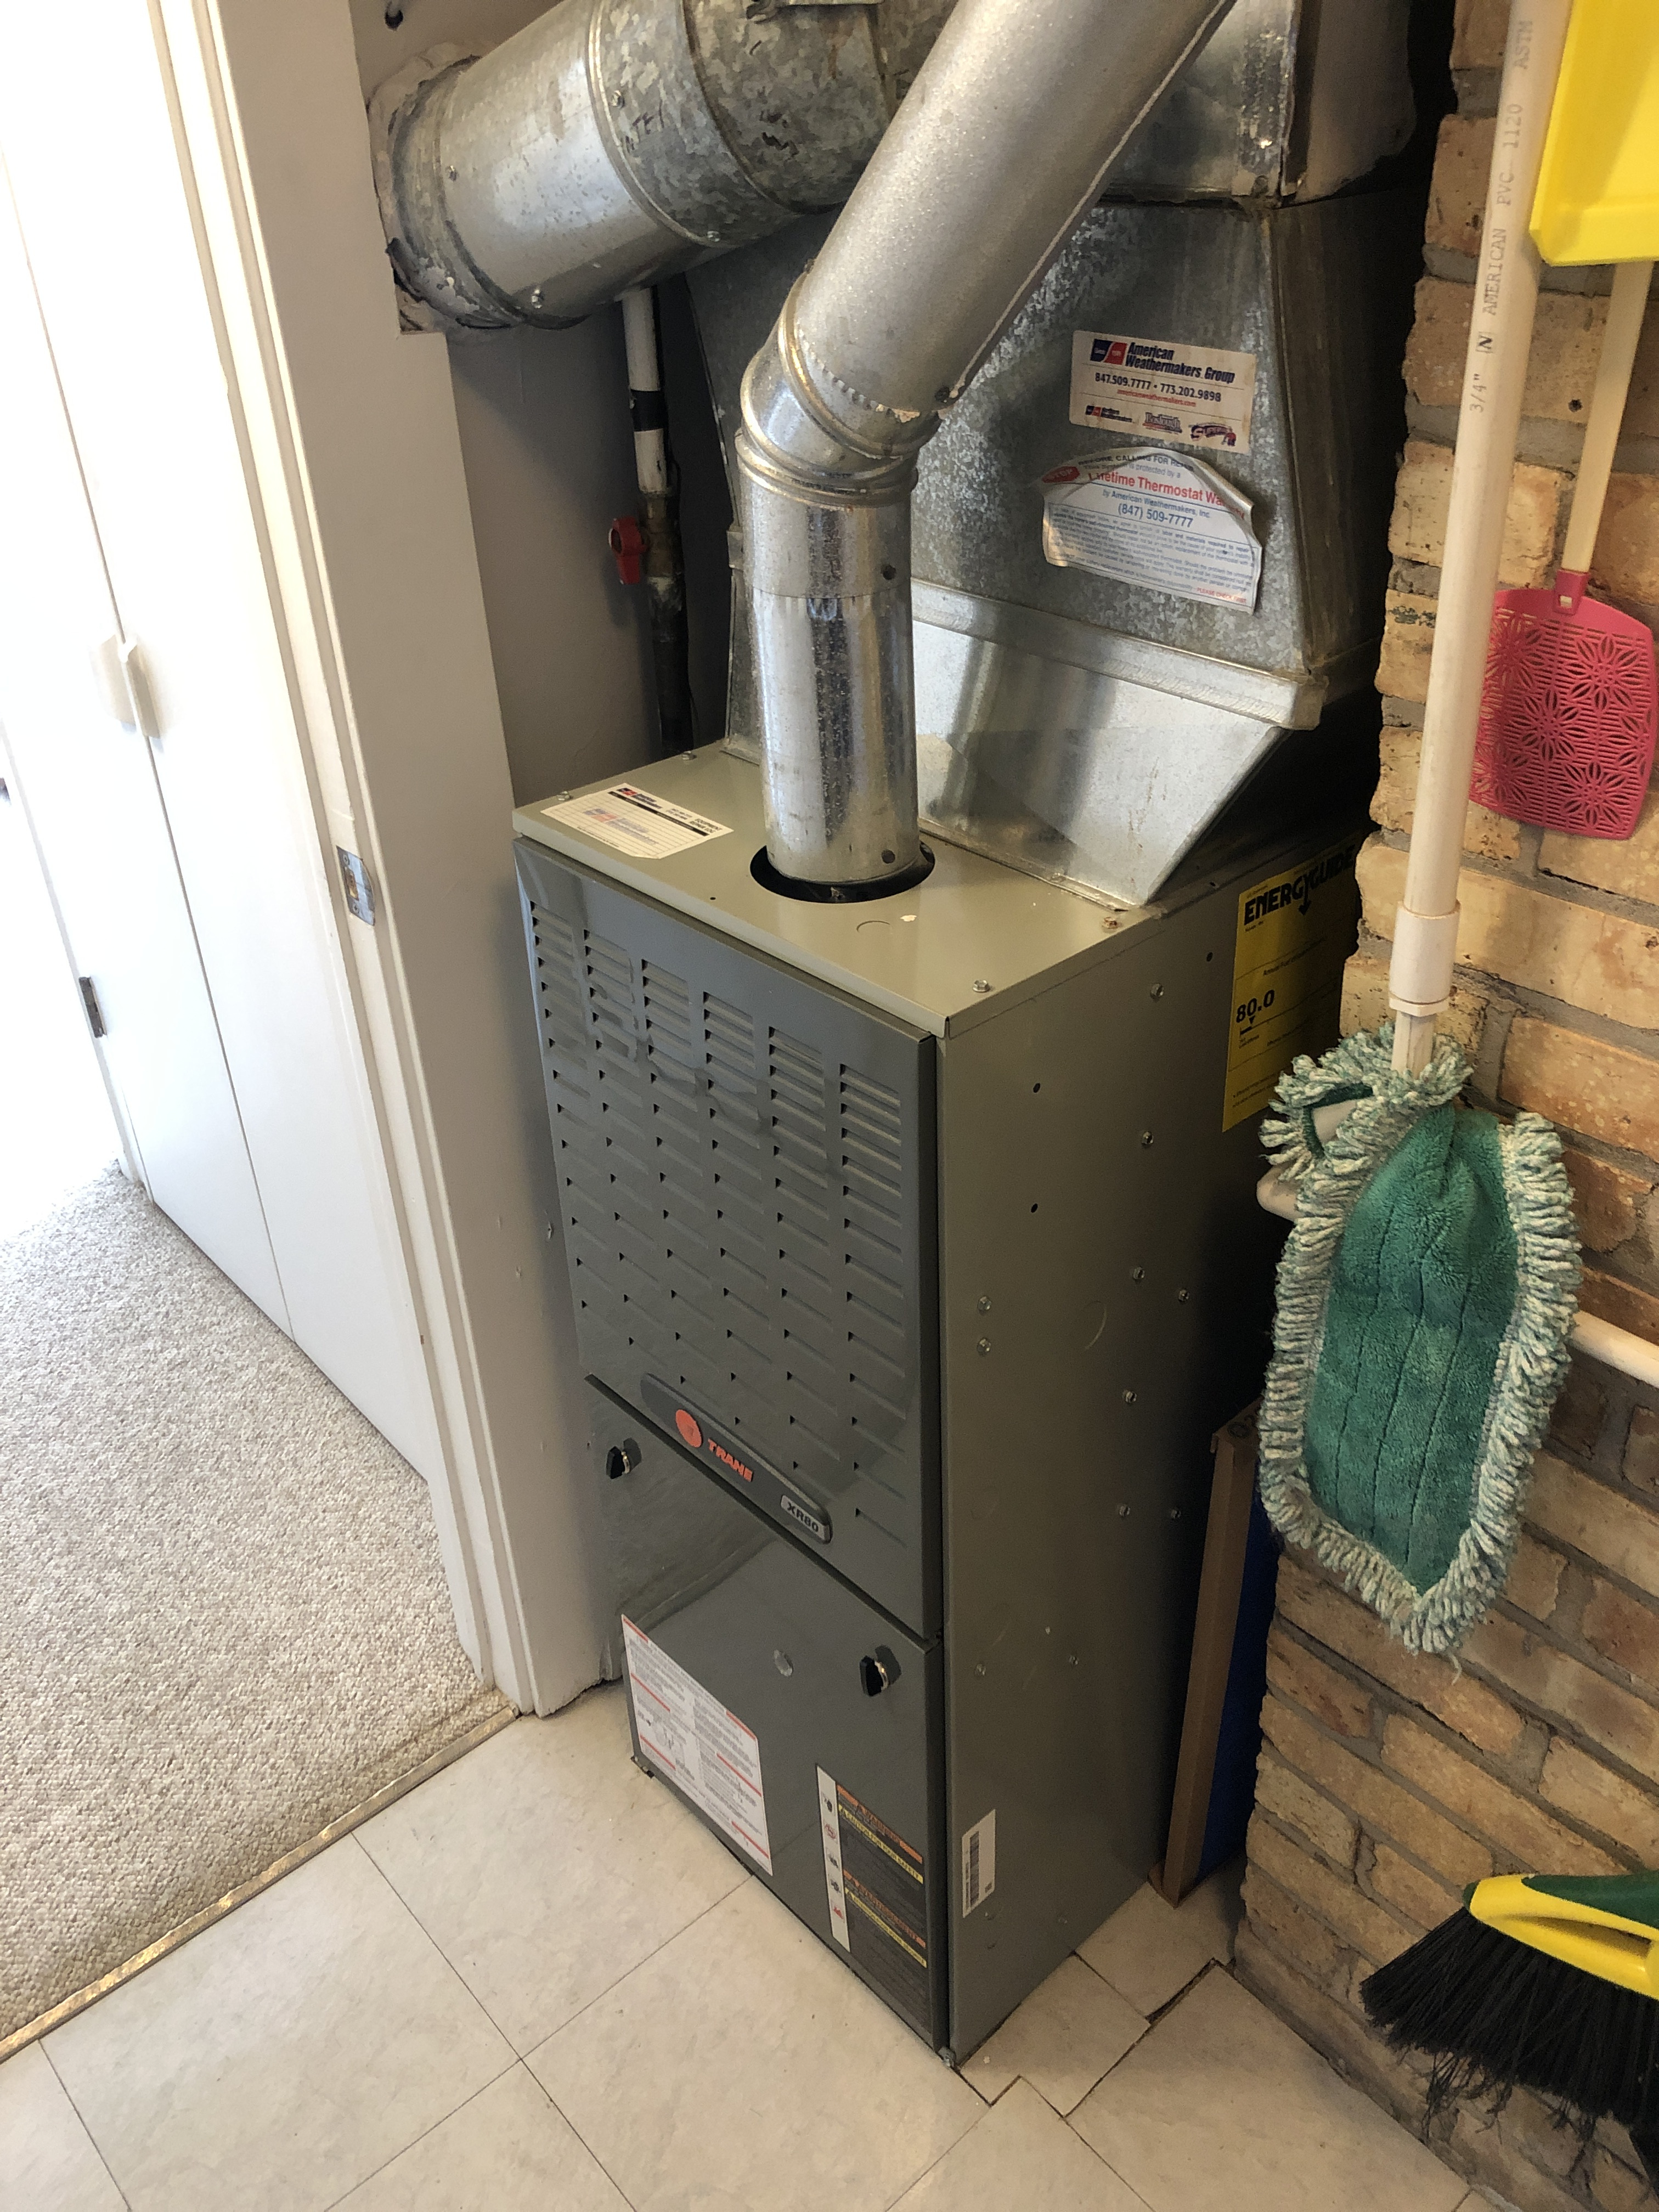 Arrived on call for giving quoting options to customer for new furnace.